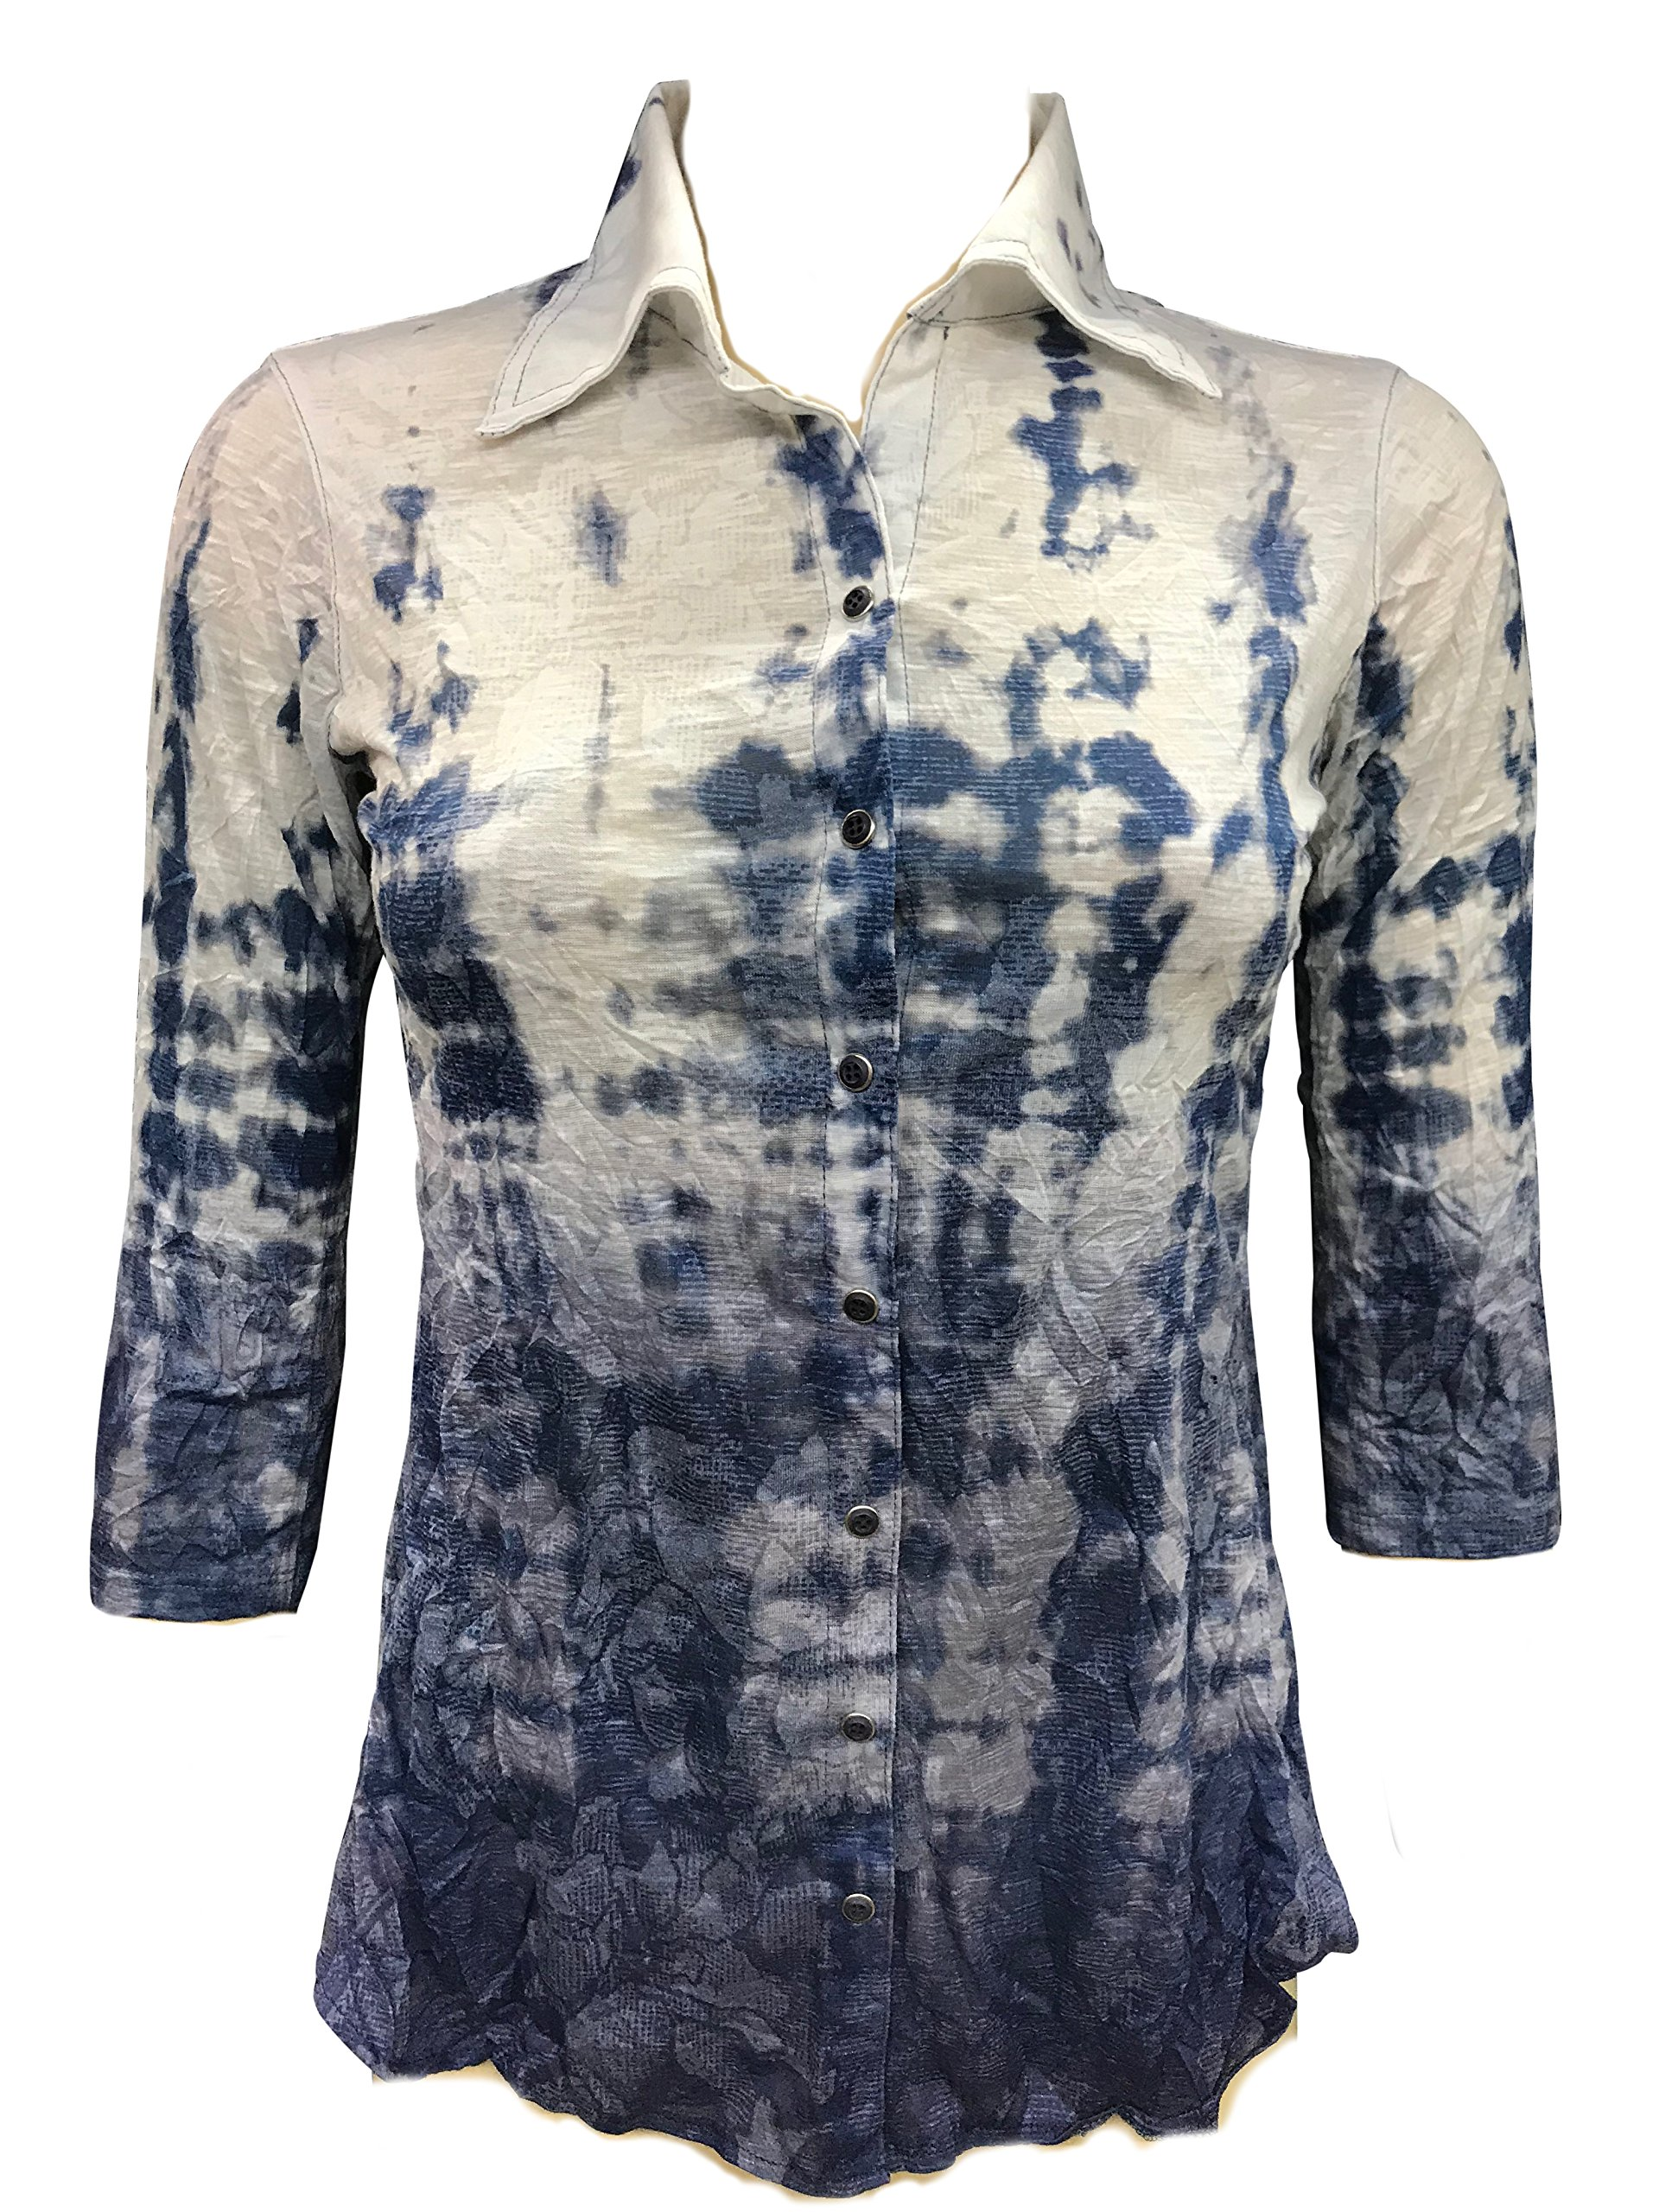 David Cline Woman's Button Down Crushed 3/4 Sleeve Shirt. Super Soft Comfortable Fabric. Water Design.